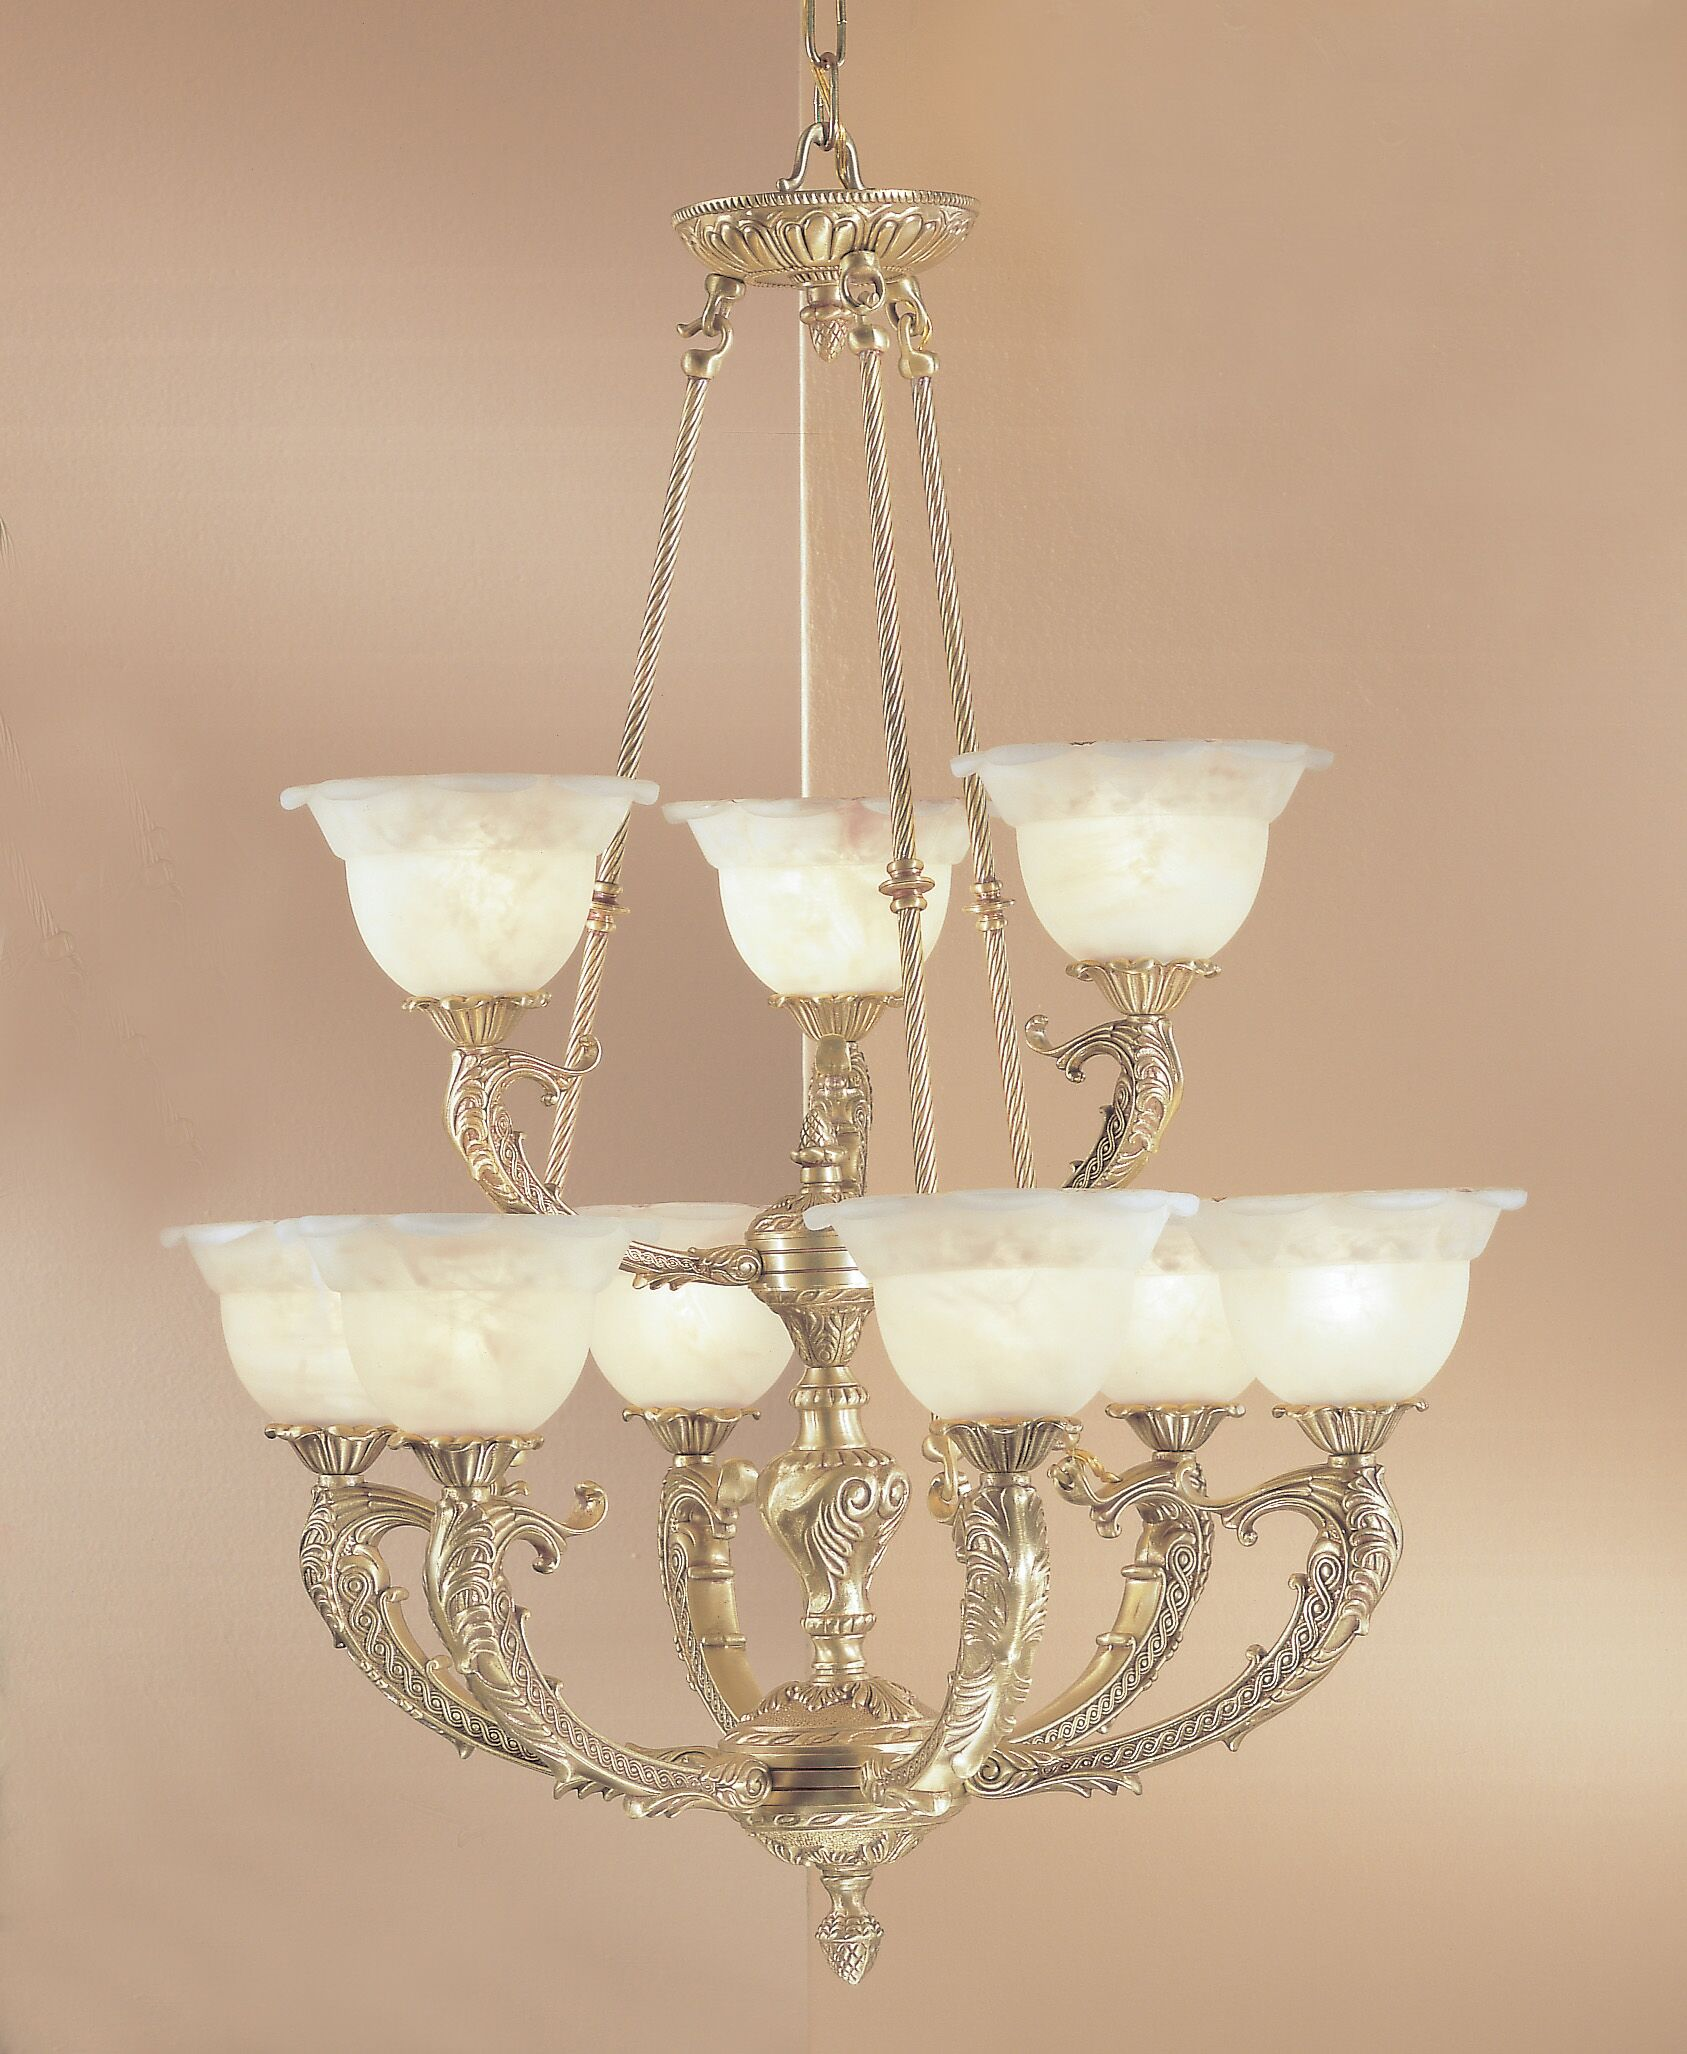 Victorian II 9-Light Shaded Chandelier Crystal Type: Swarovski Elements, Finish: Satin Bronze with Brown Patina